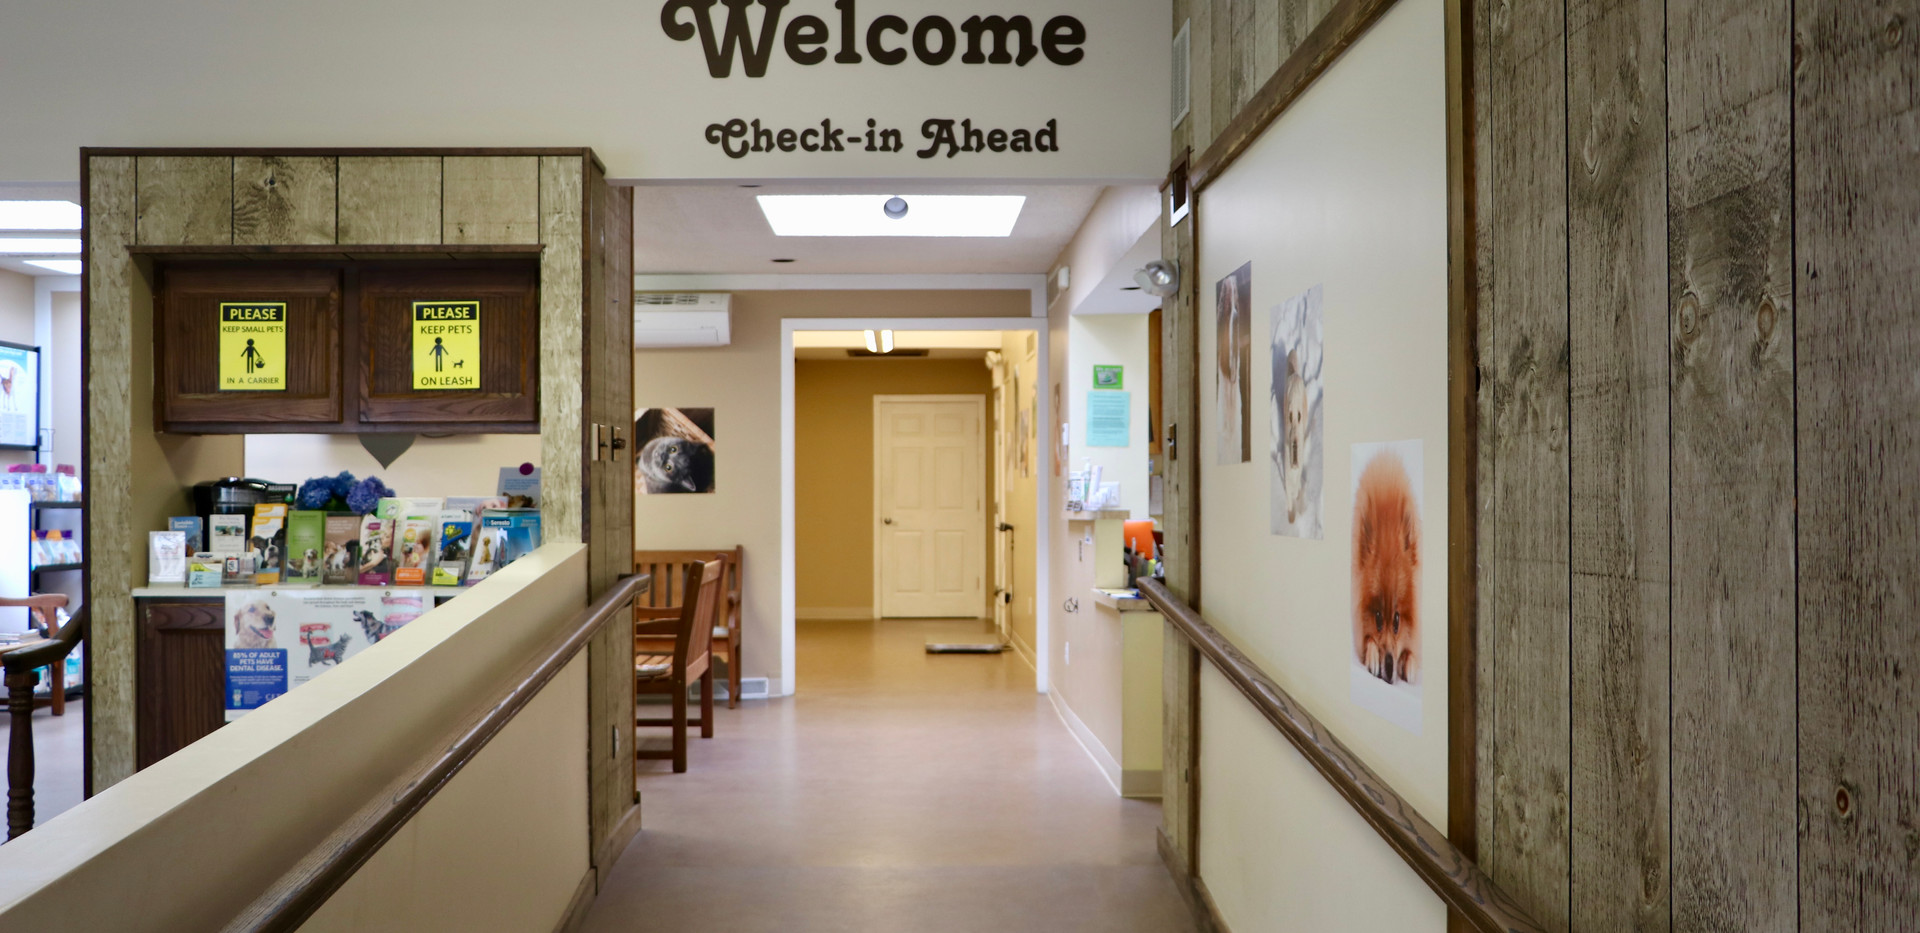 Welcome Entrance